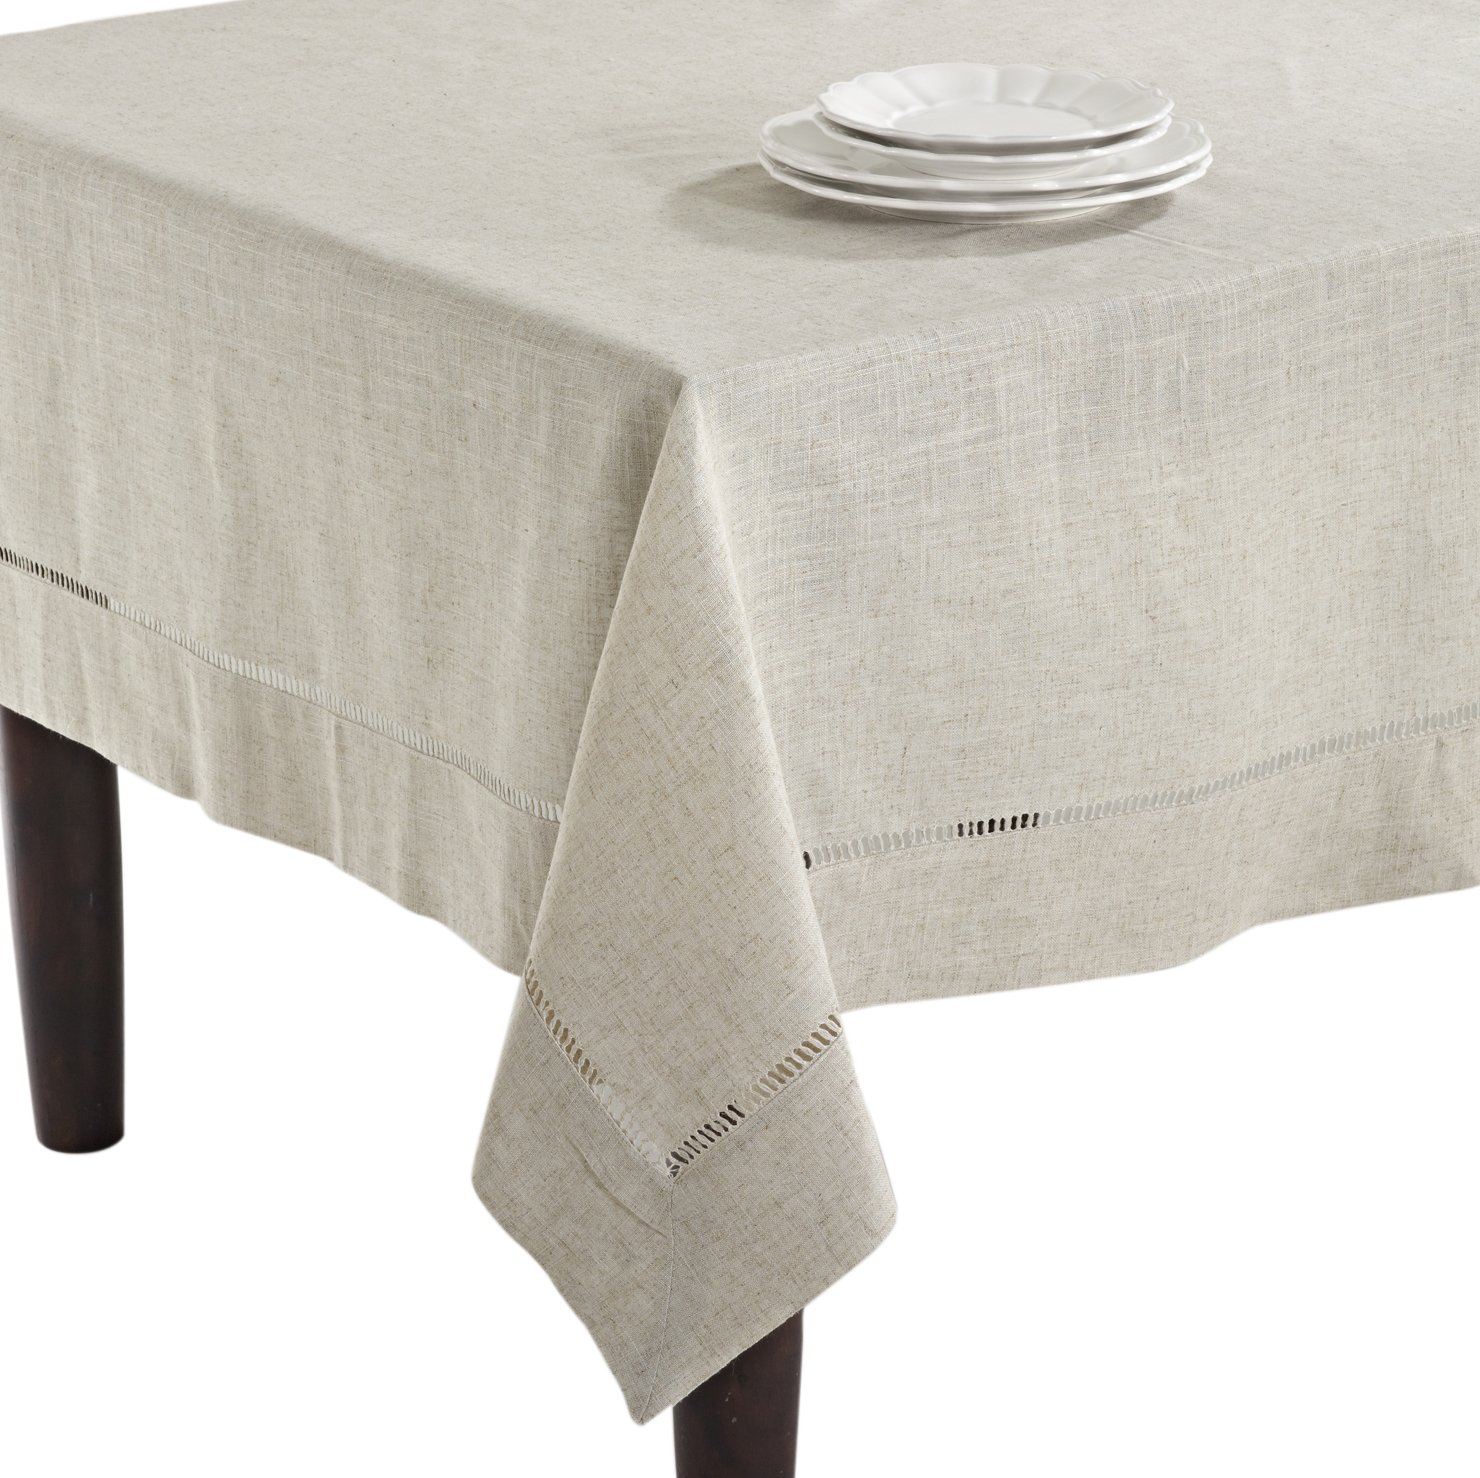 SARO LIFESTYLE 731 Toscana Tablecloths, 65 by 180-Inch, Oblong, Natural